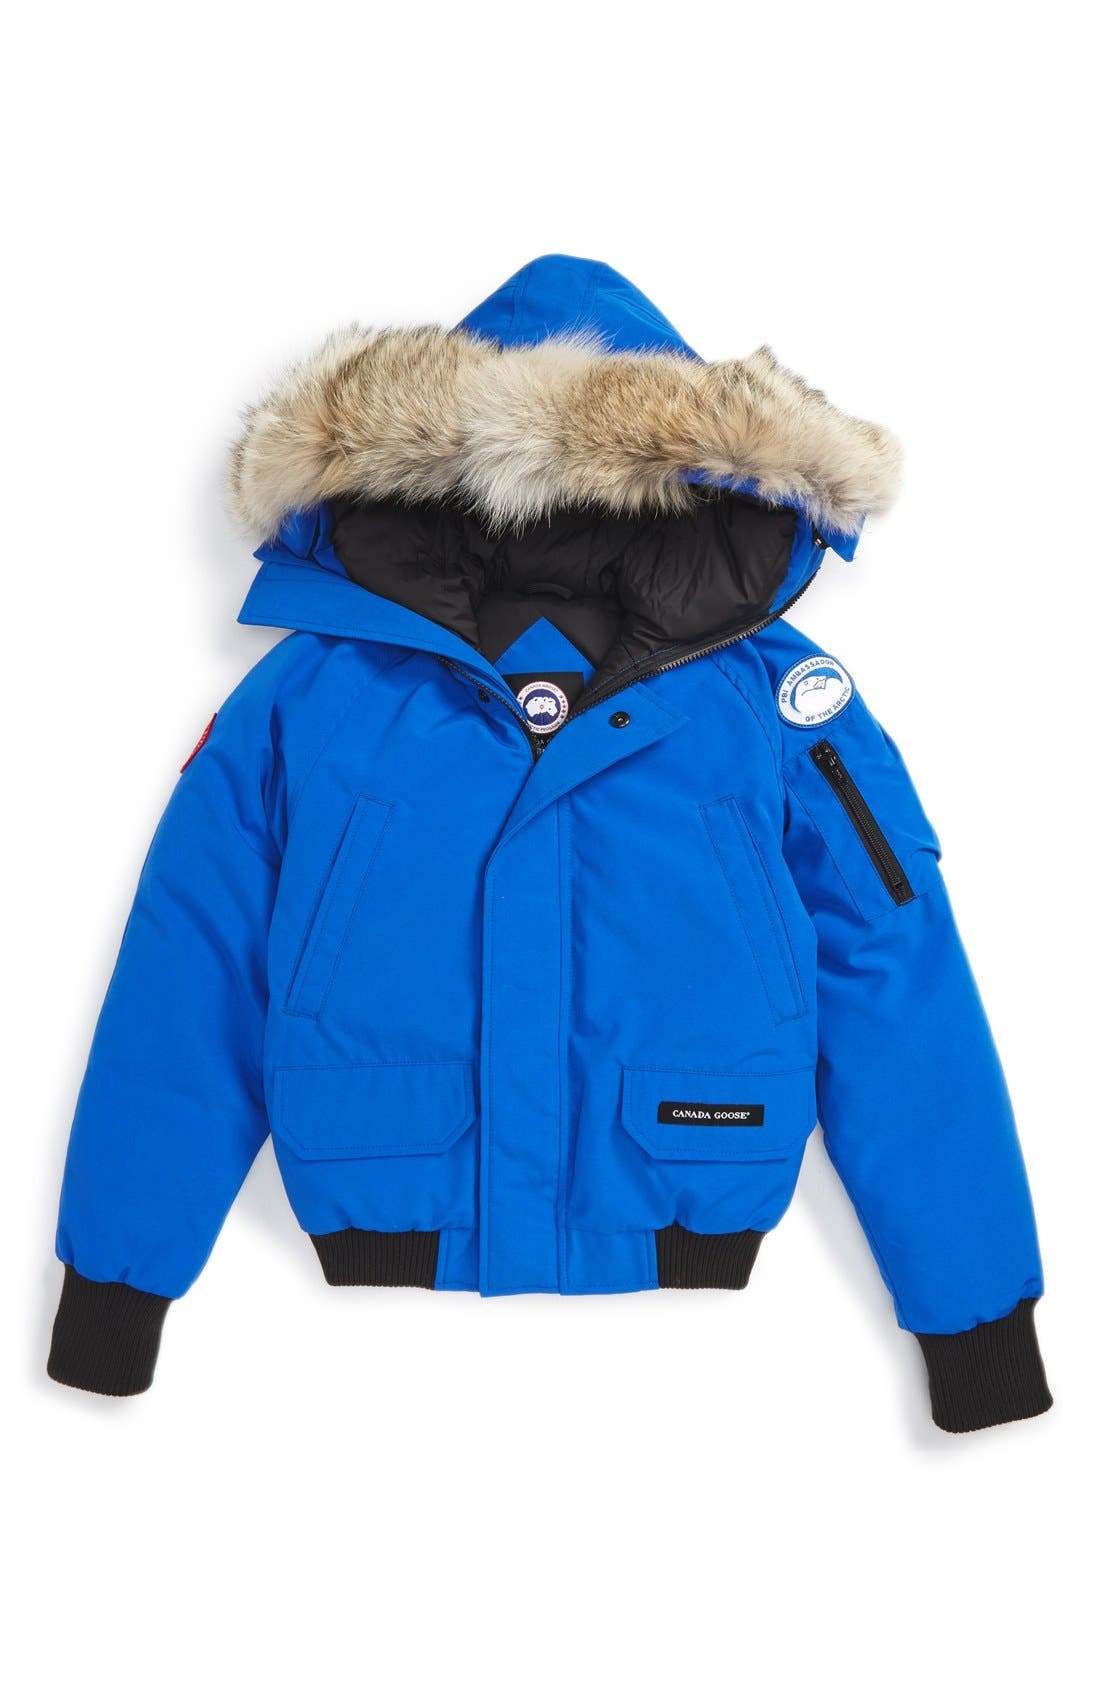 CANADA GOOSE PBI Chilliwack Hooded Bomber Jacket with Genuine Coyote Fur Trim